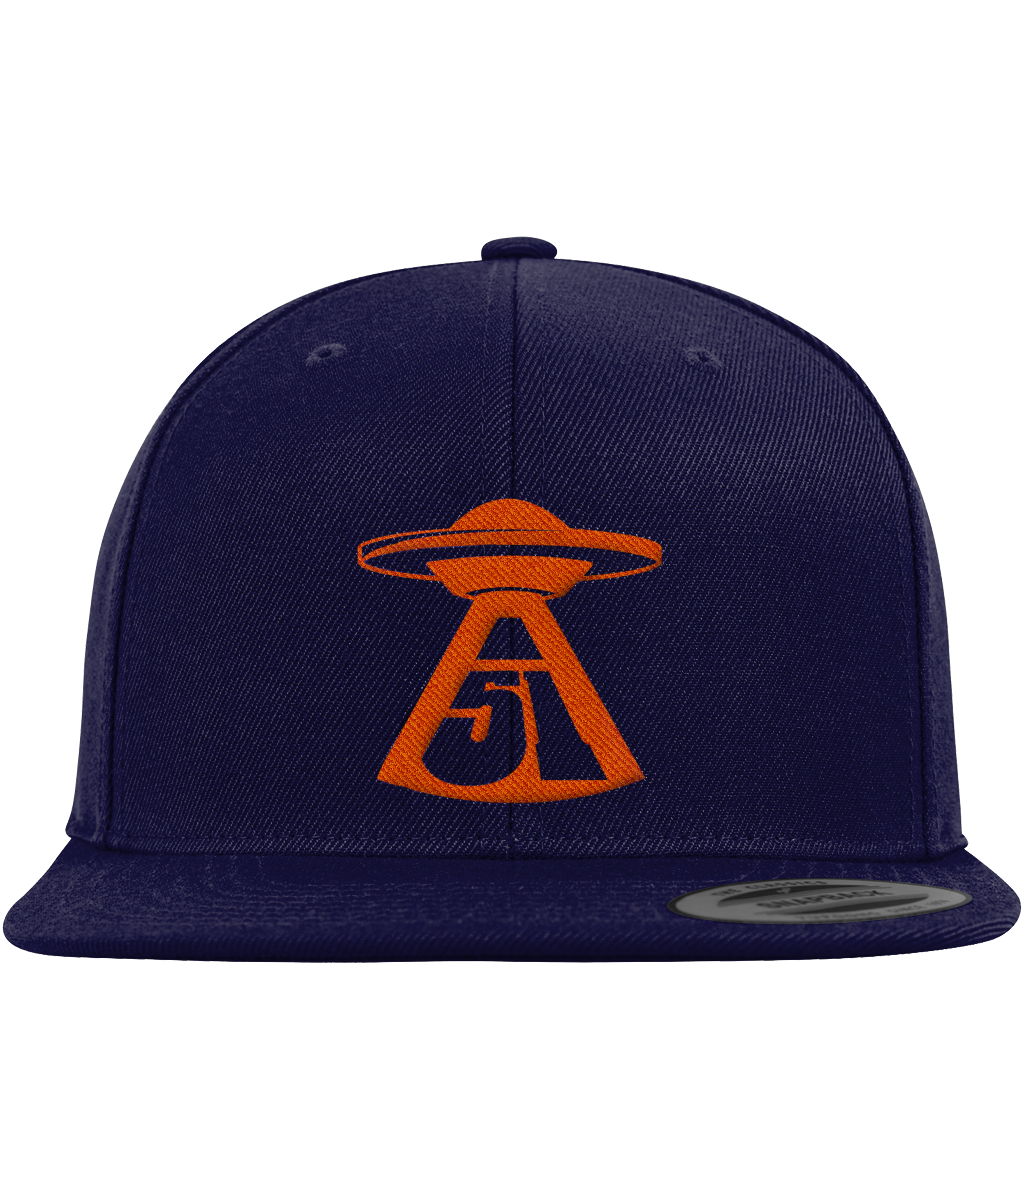 First Contact - Snapback Cap